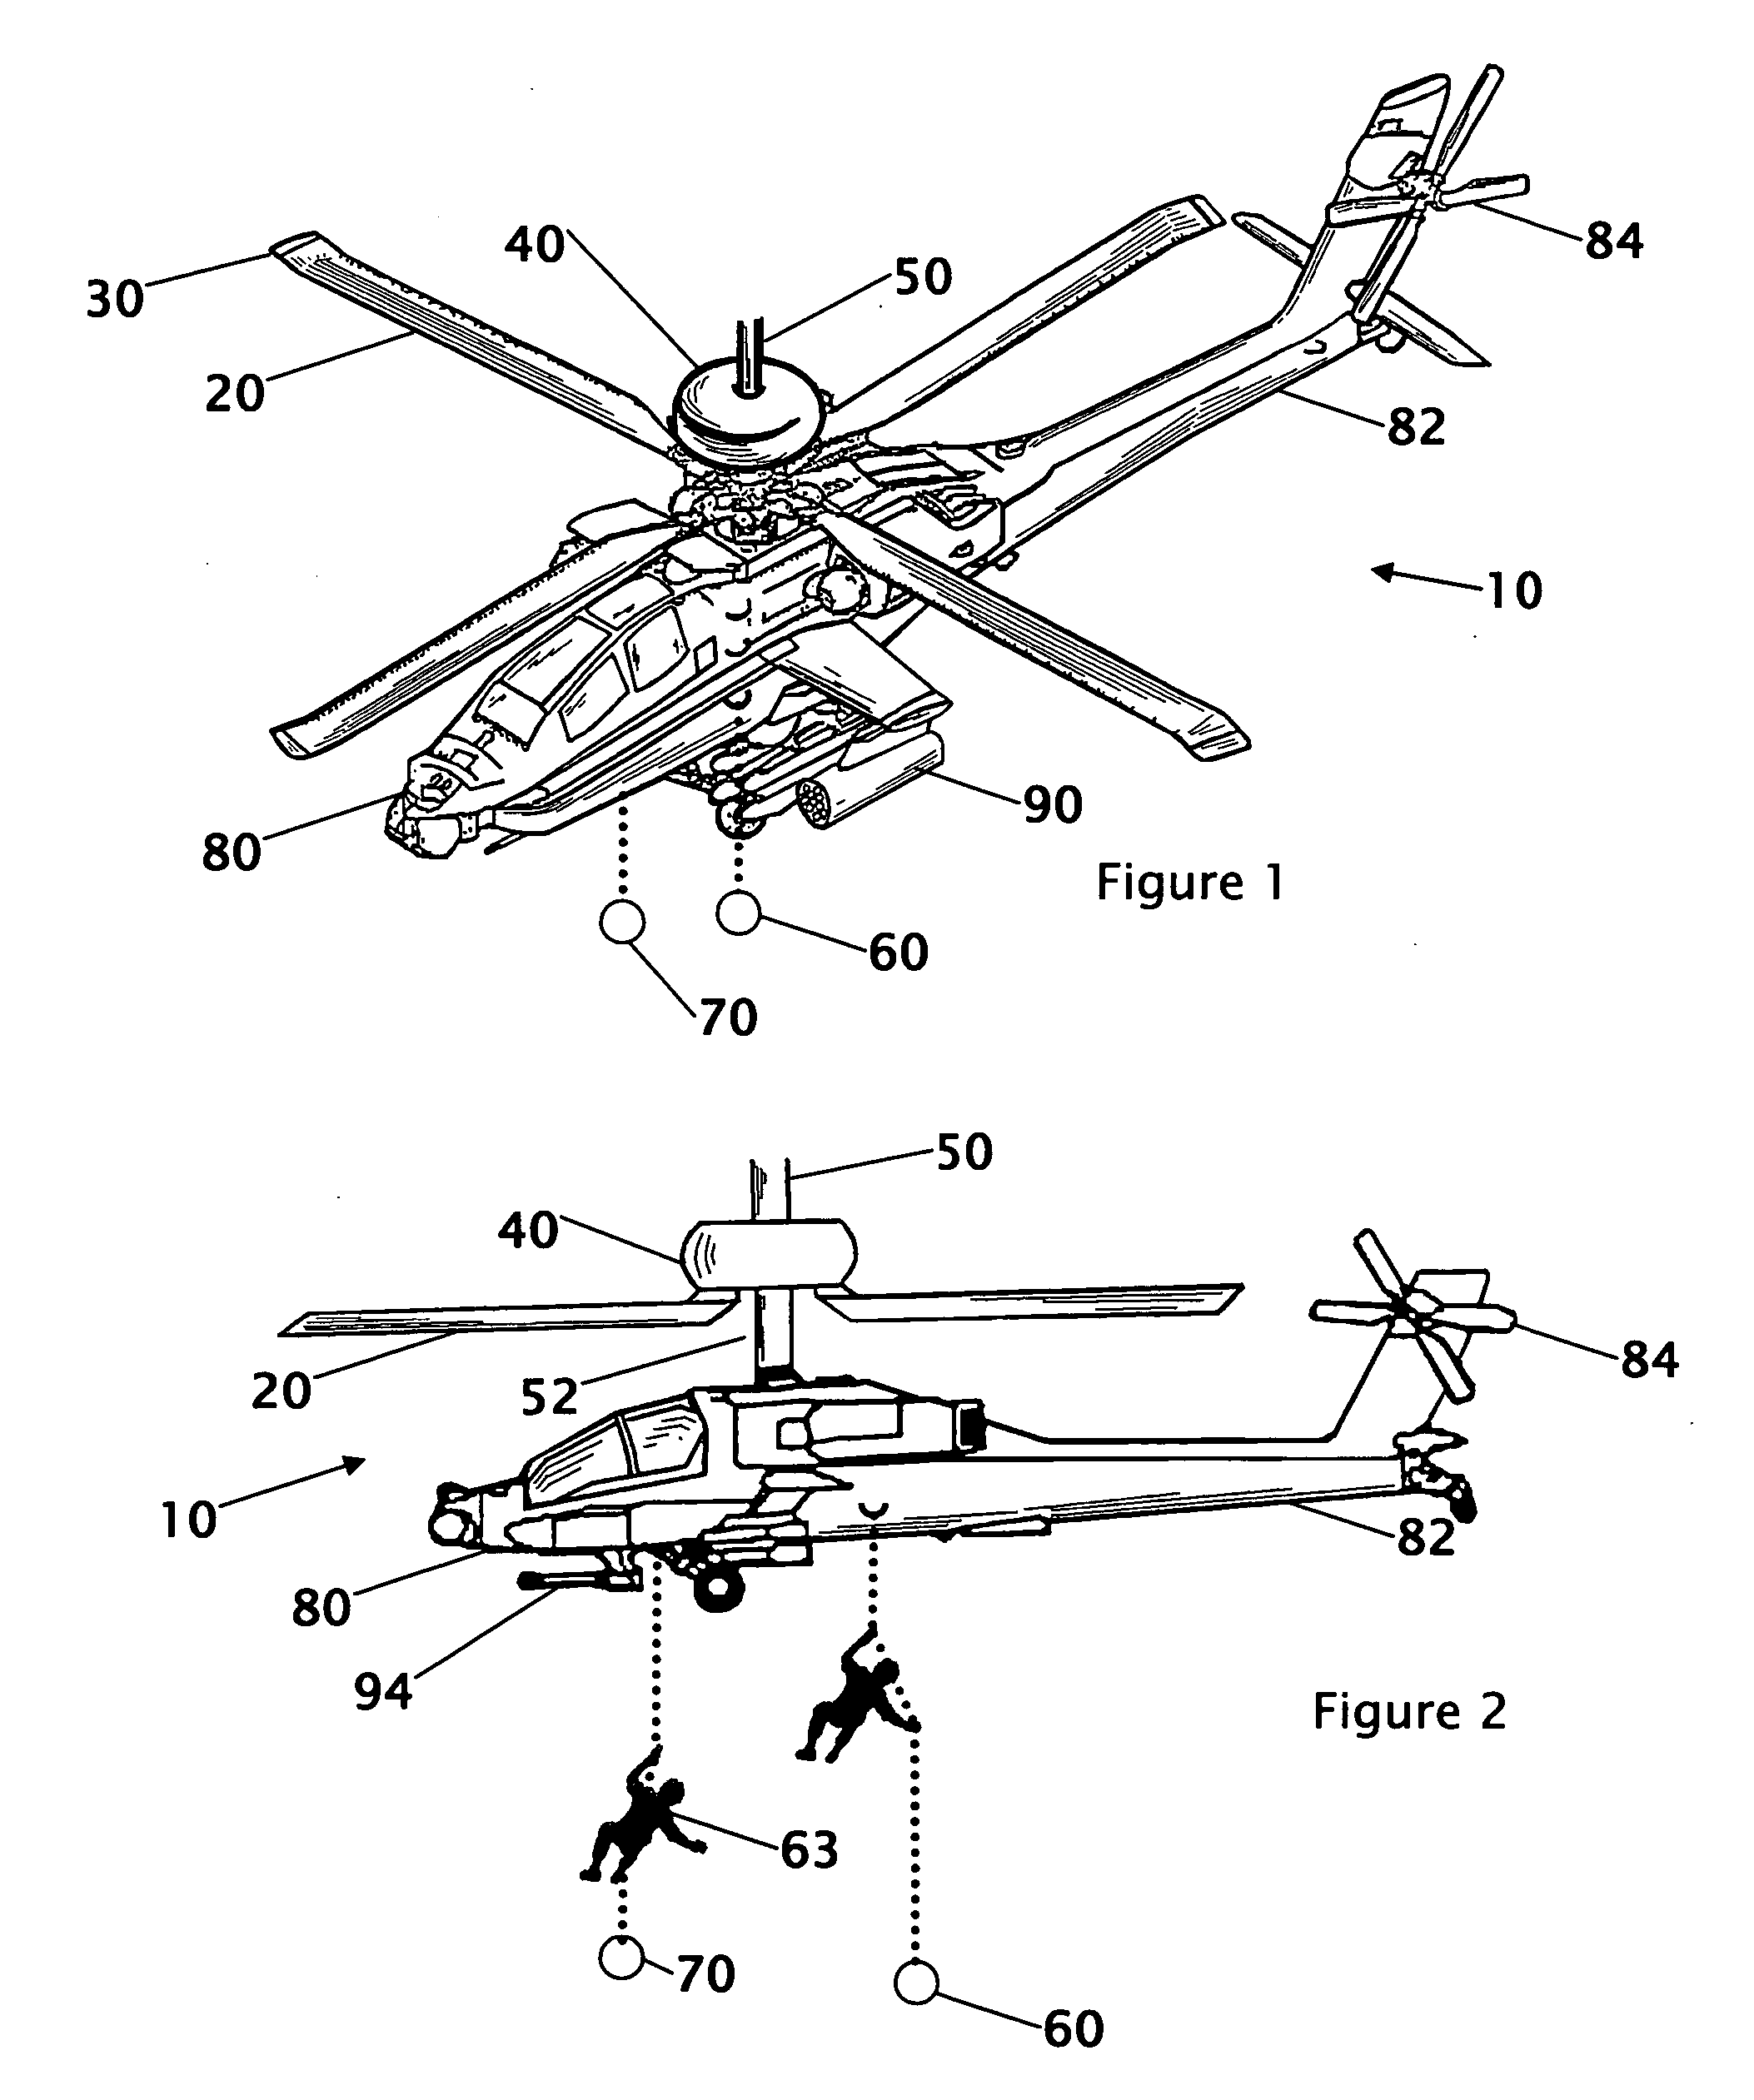 Blackhawk Fan Wiring Diagram Diagrams Schema Hunter Wire Patent Us20070057805 Combination Ceiling With Light And Sound 3 Speed